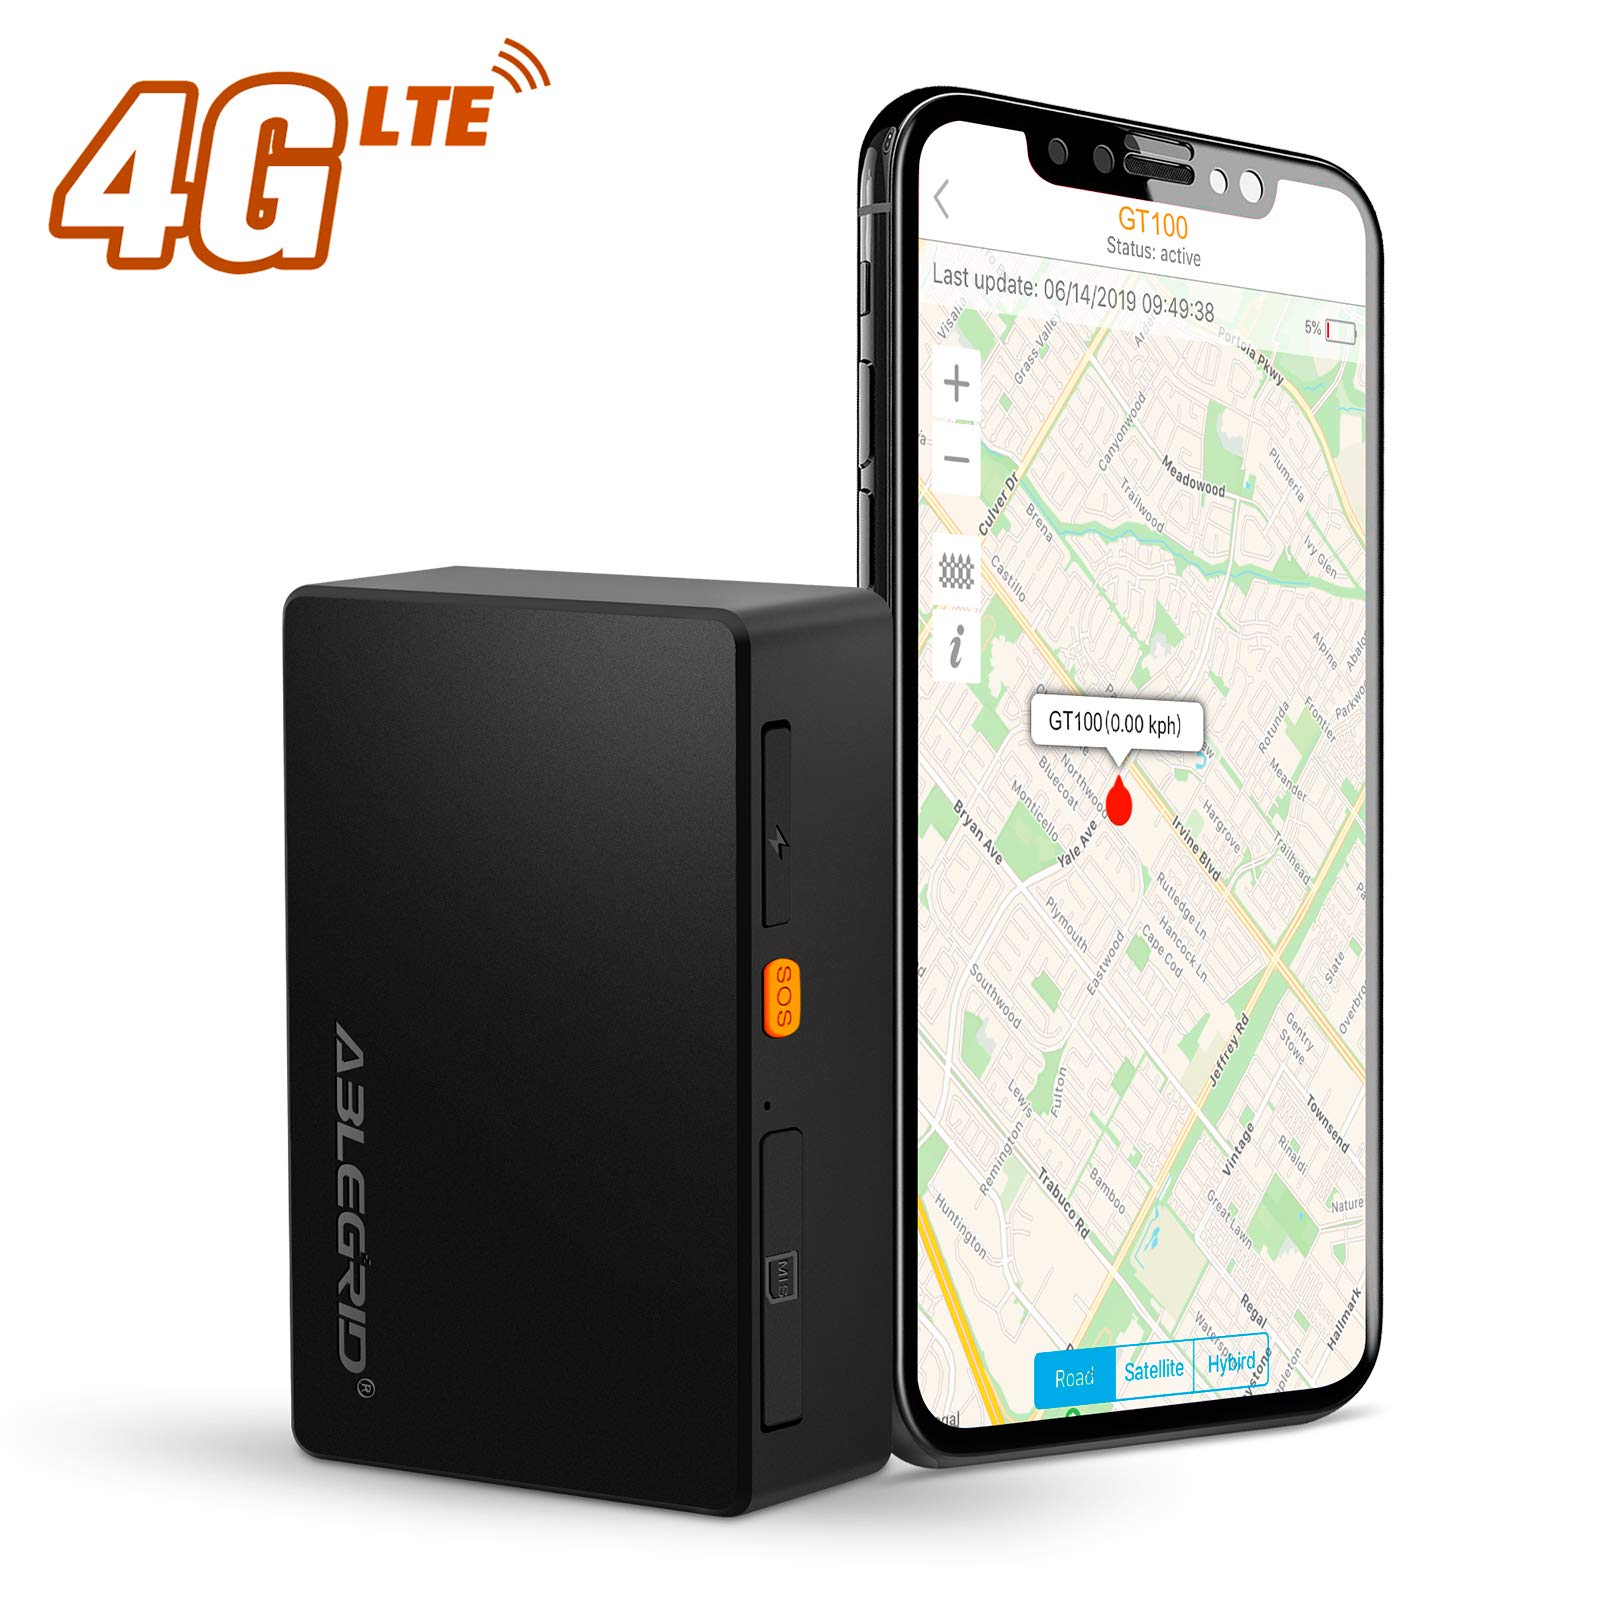 ABLEGRID 4G LTE GPS Tracker, GT100 Real-time GPS Tracking Device Portable for Vehicles and Persons Hidden Magnetic Mini GPS Locator Tracker for Cars - Free Global SIM Card by ABLEGRID